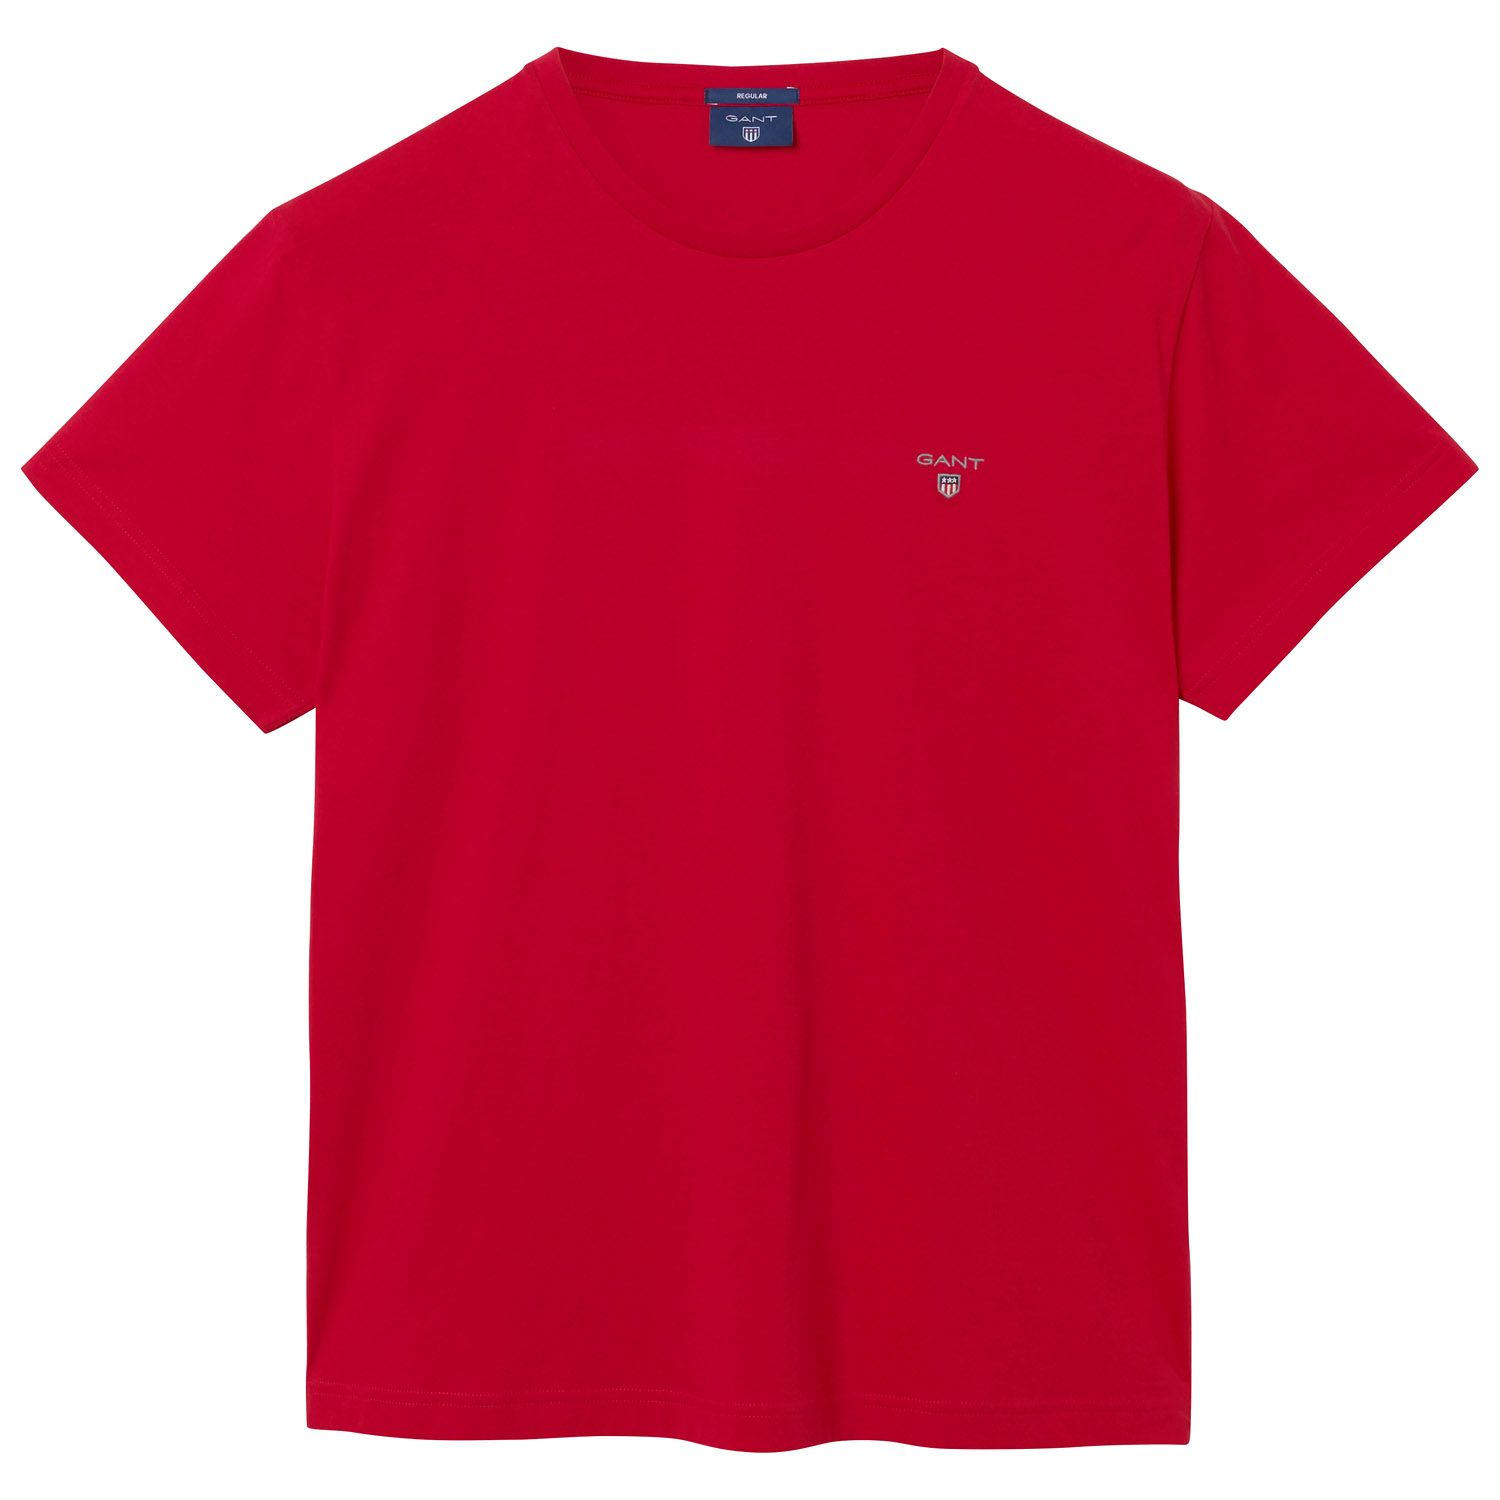 GANT Bright Red Solid T-Shirt